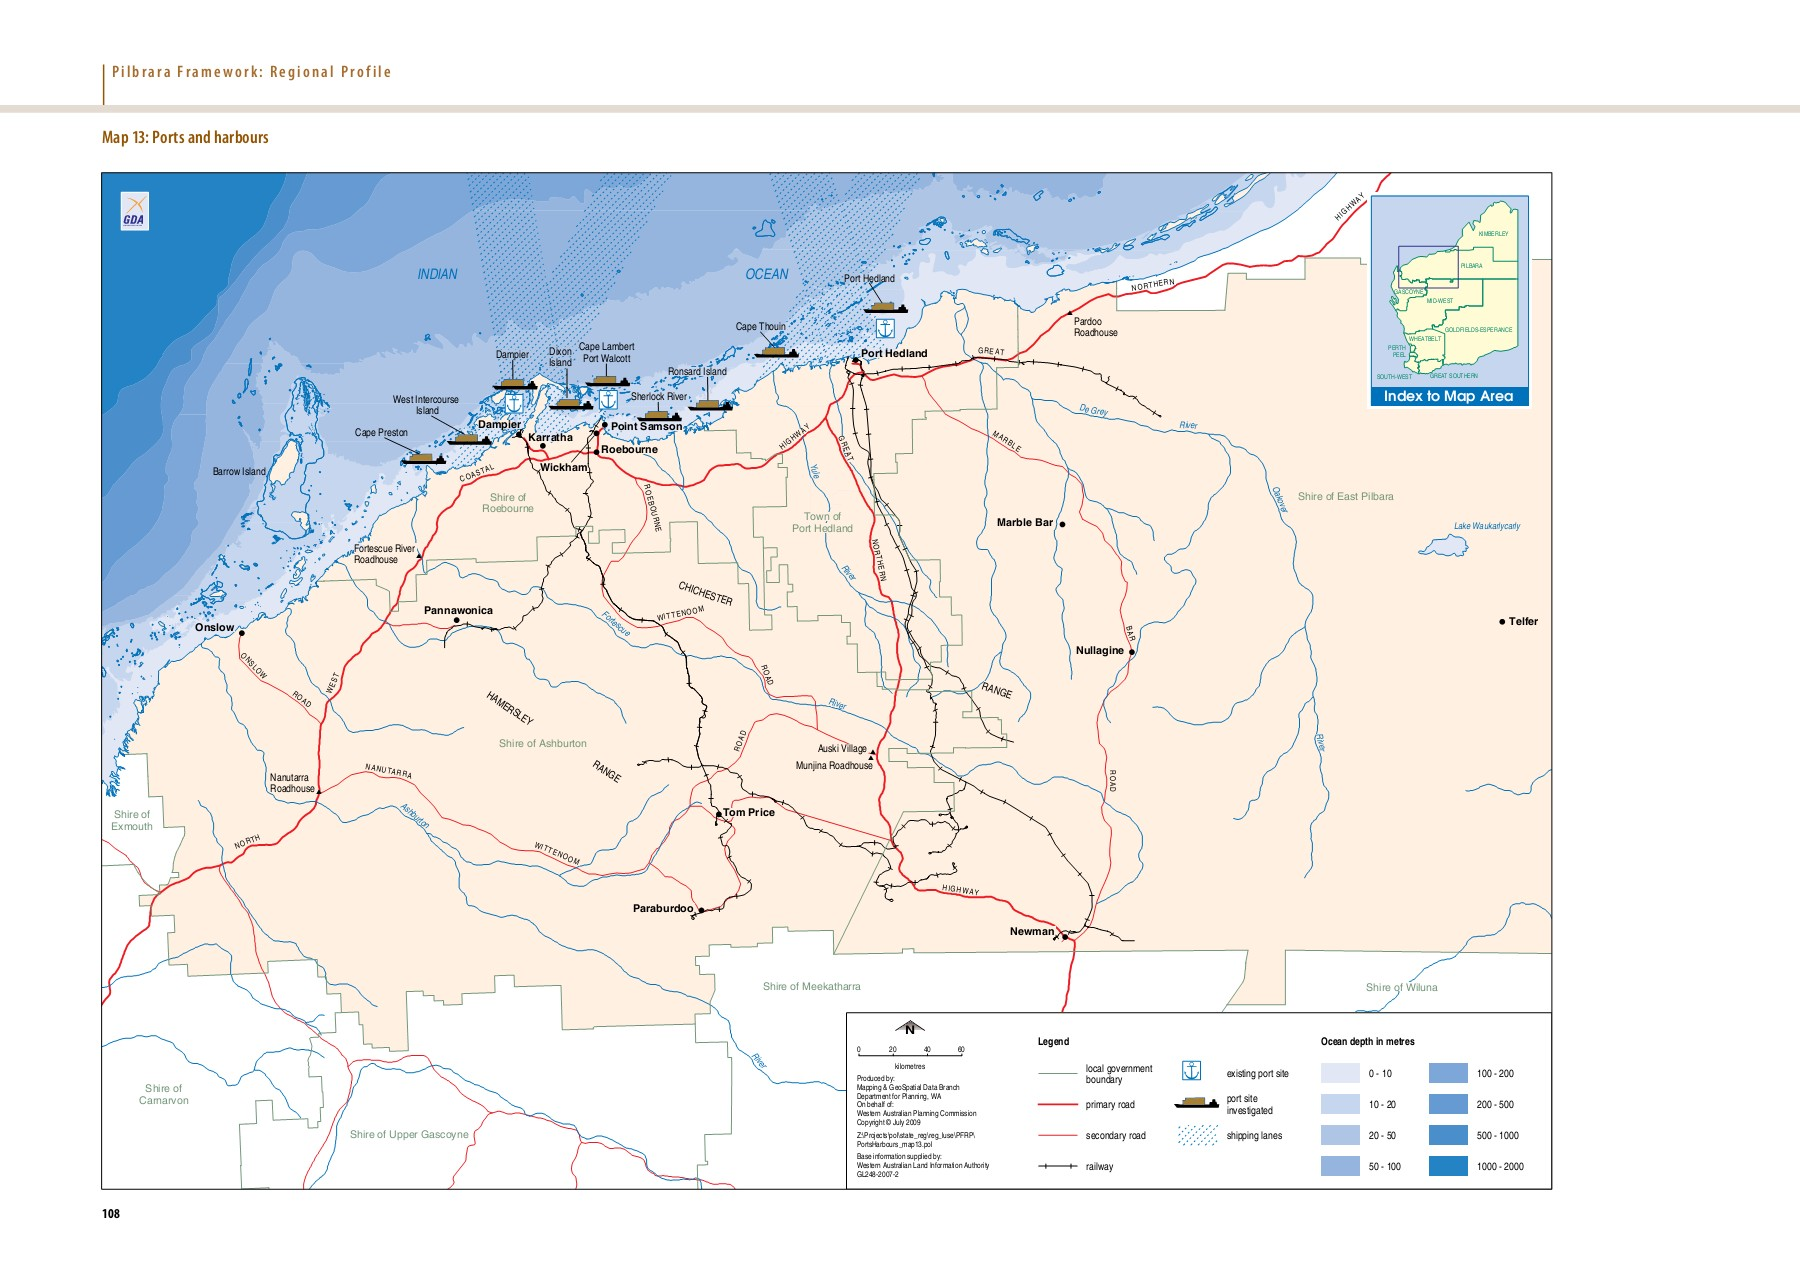 Map 11: Pilbara bioregions Map 12: Road system NK1 N Pages 1 - 5